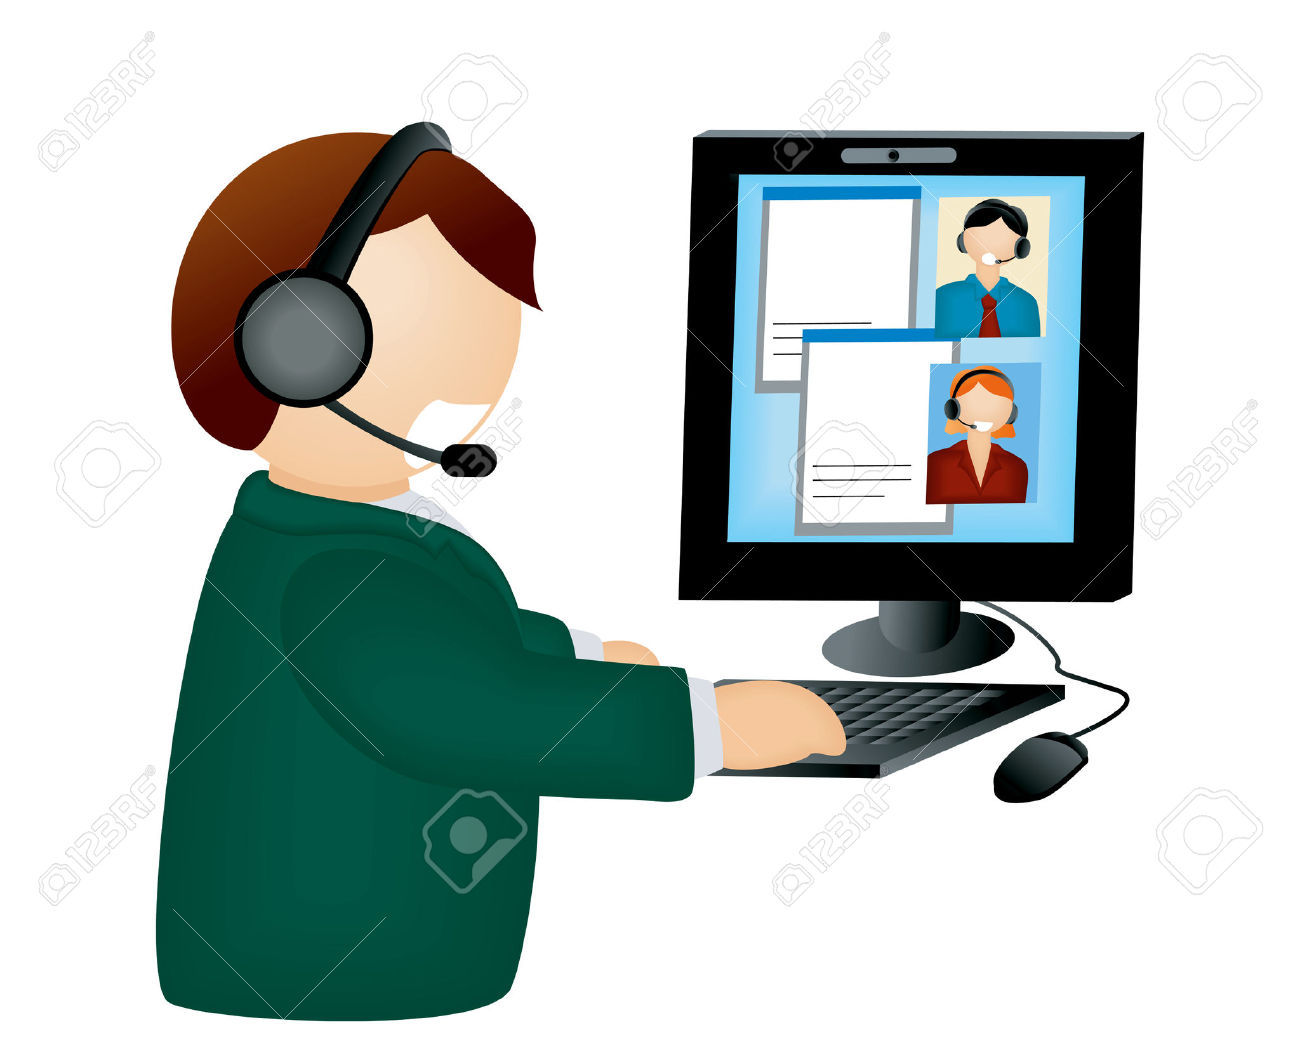 Conference call clipart » Clipart Station.